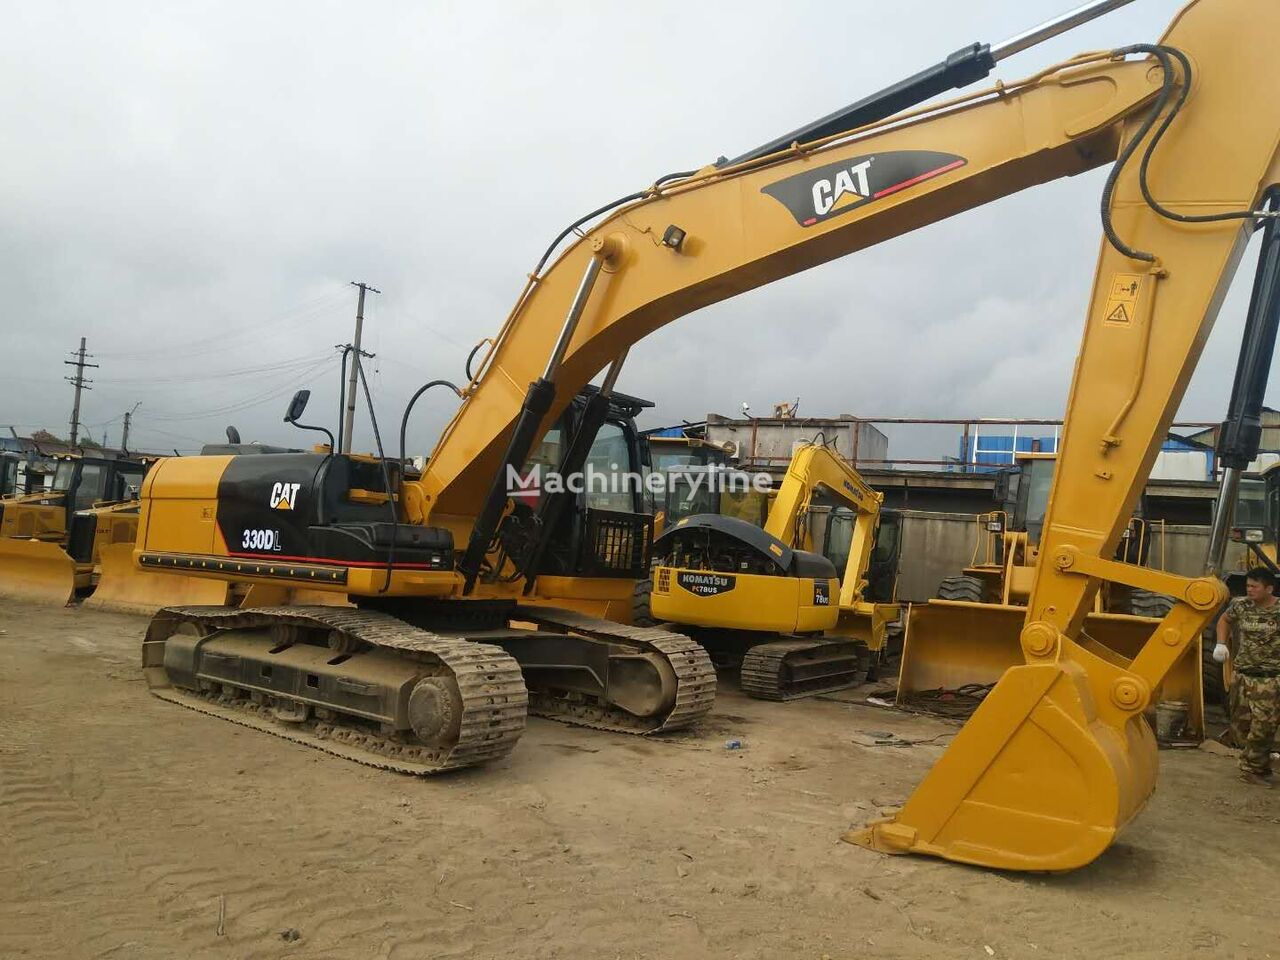 CATERPILLAR 330DL tracked excavator